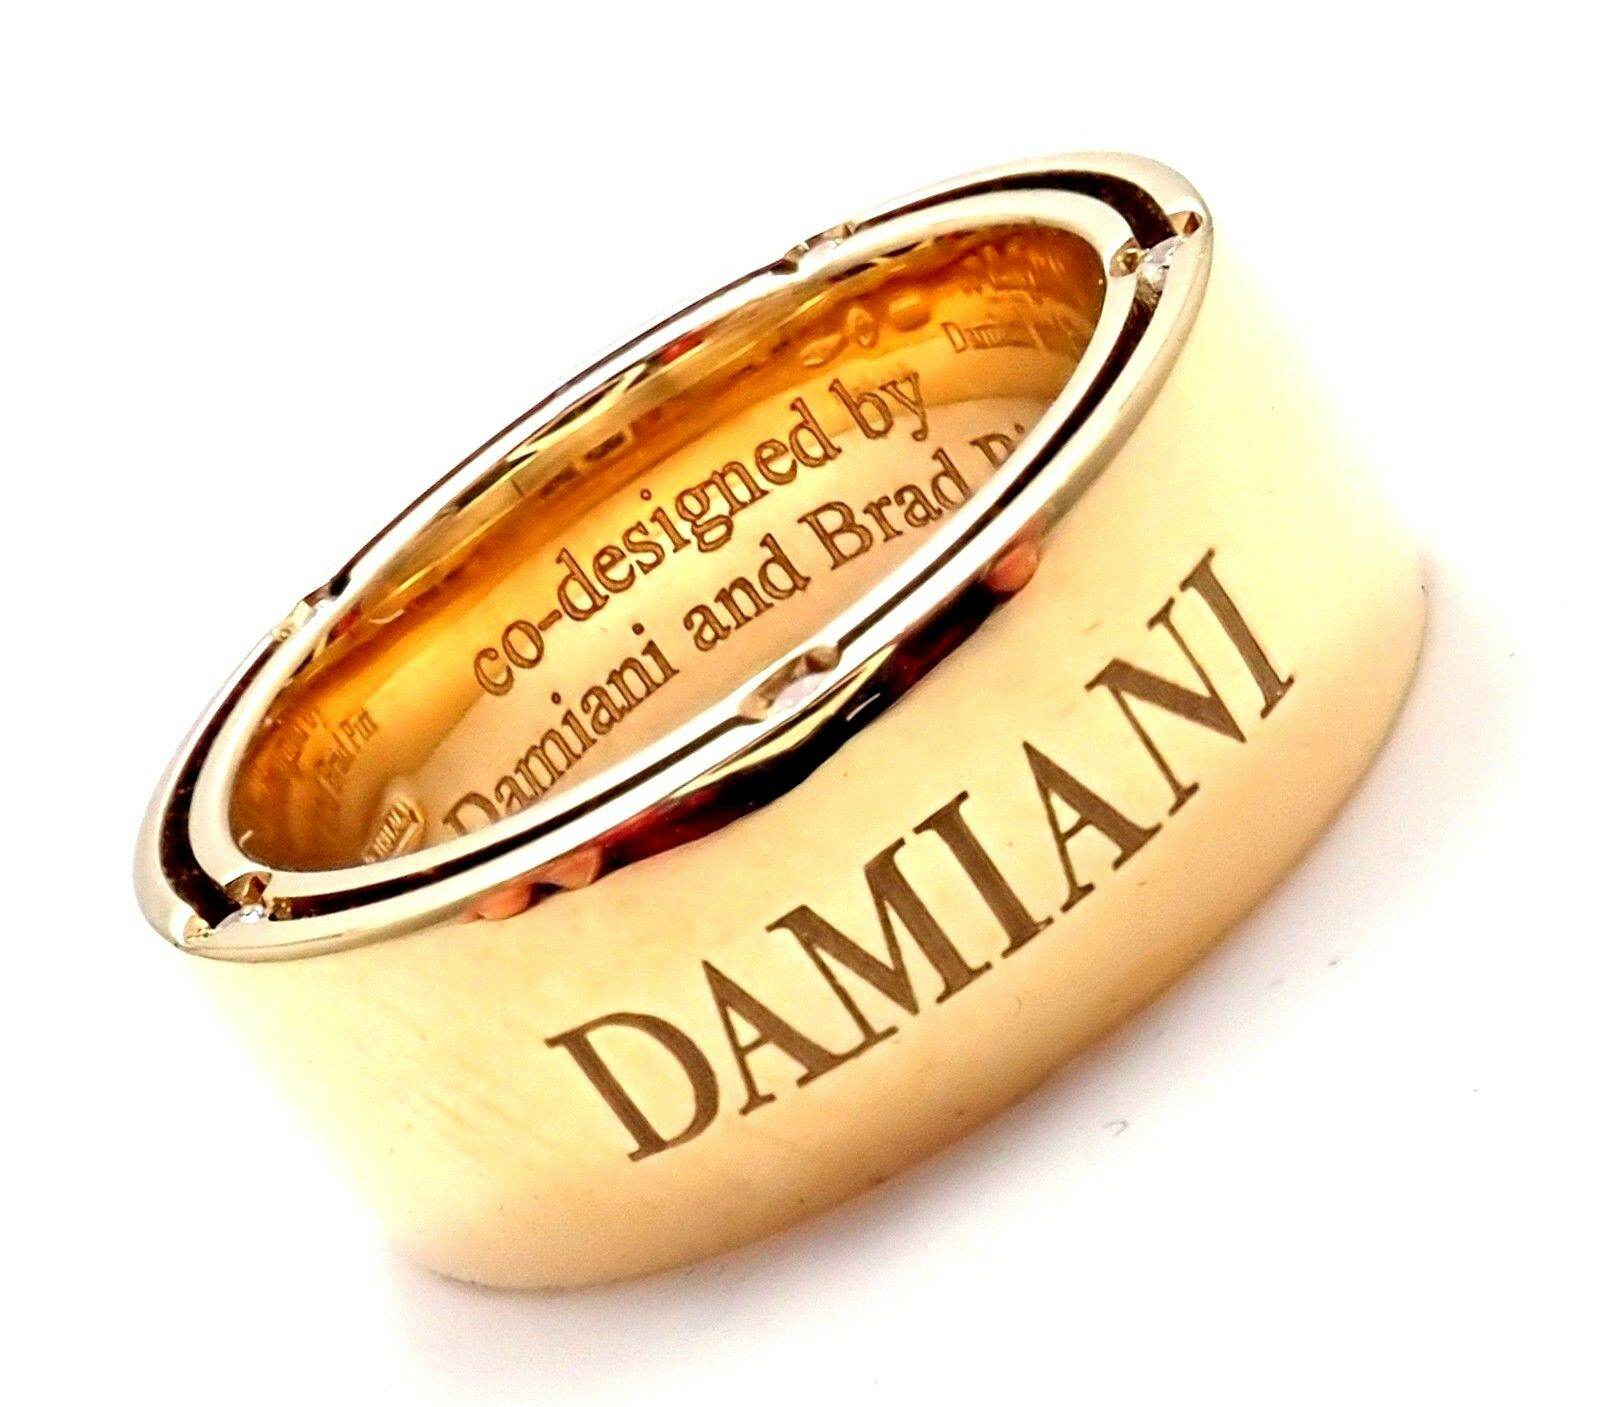 Authentic Damiani Brad Pitt 18k Yellow Gold 10 Diamond Wide Band Ring Sz 5.5